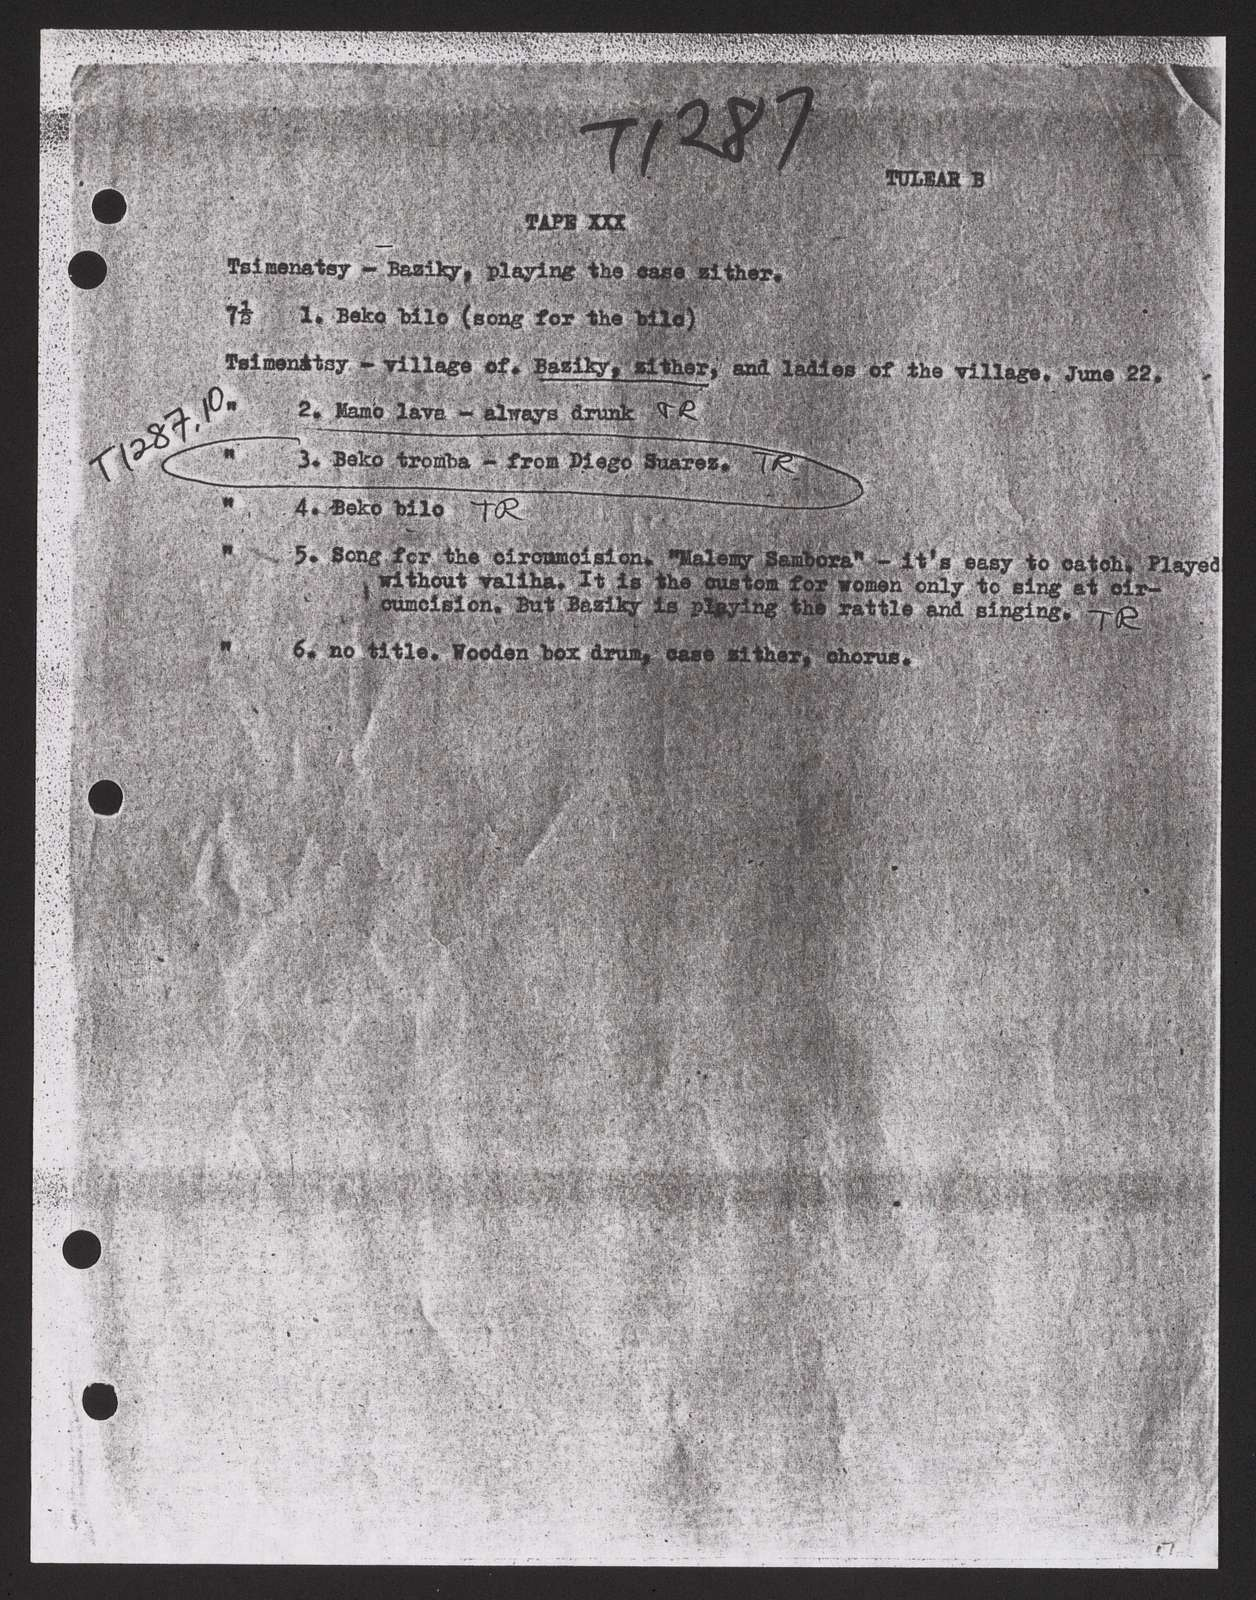 Alan Lomax Collection, Manuscripts, Performance style, Global Jukebox, AF (23), tape directory